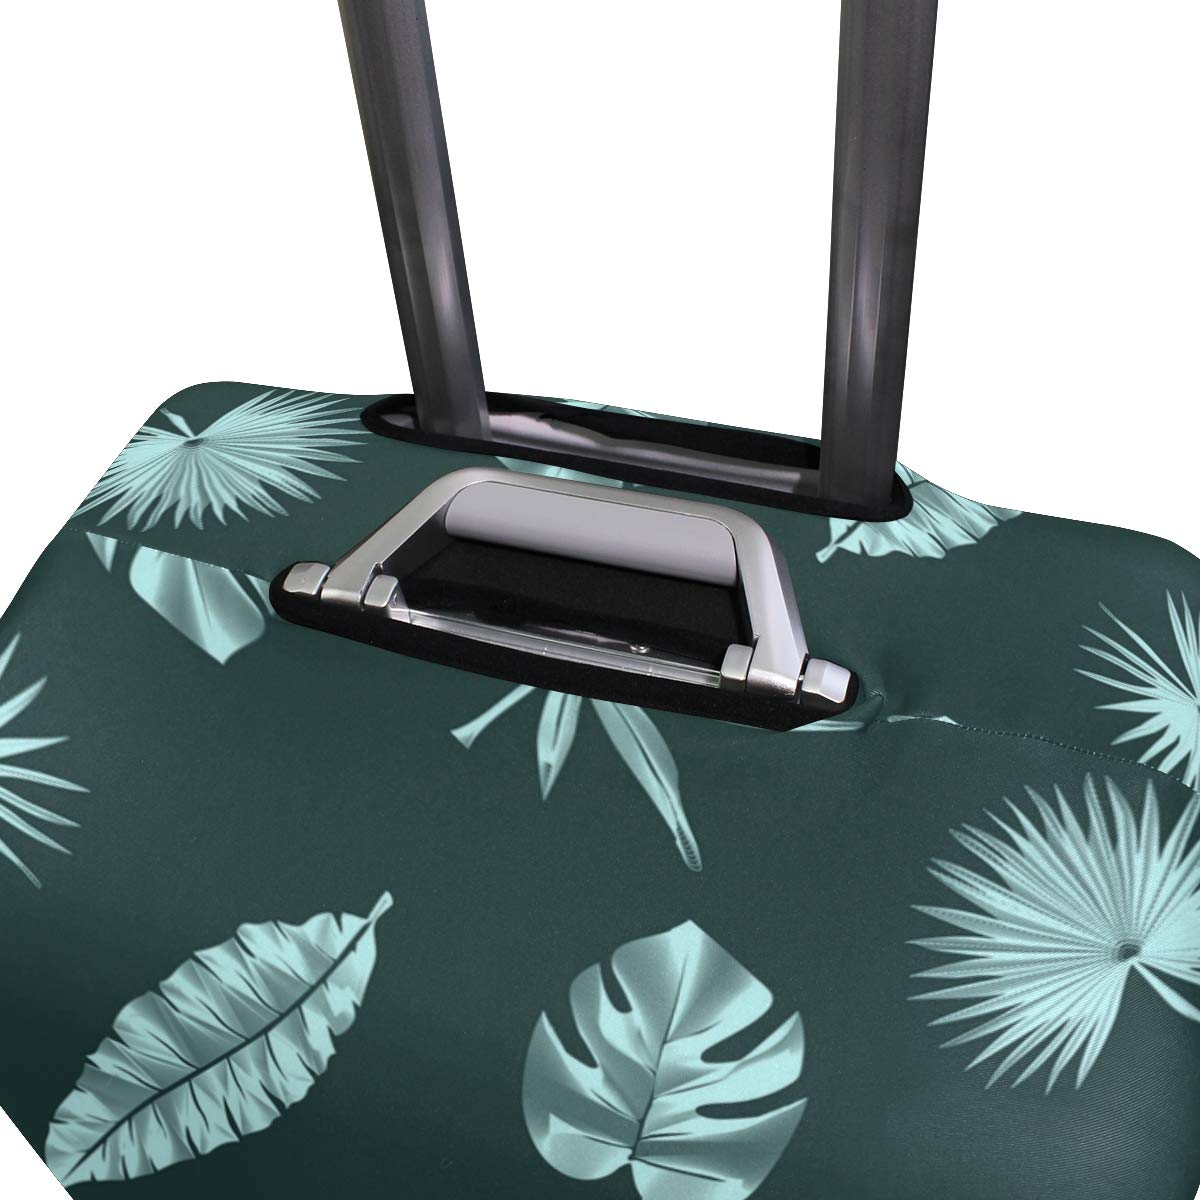 Banana Leaf Bench Traveler Lightweight Rotating Luggage Protector Case Can Carry With You Can Expand Travel Bag Trolley Rolling Luggage Protector Case